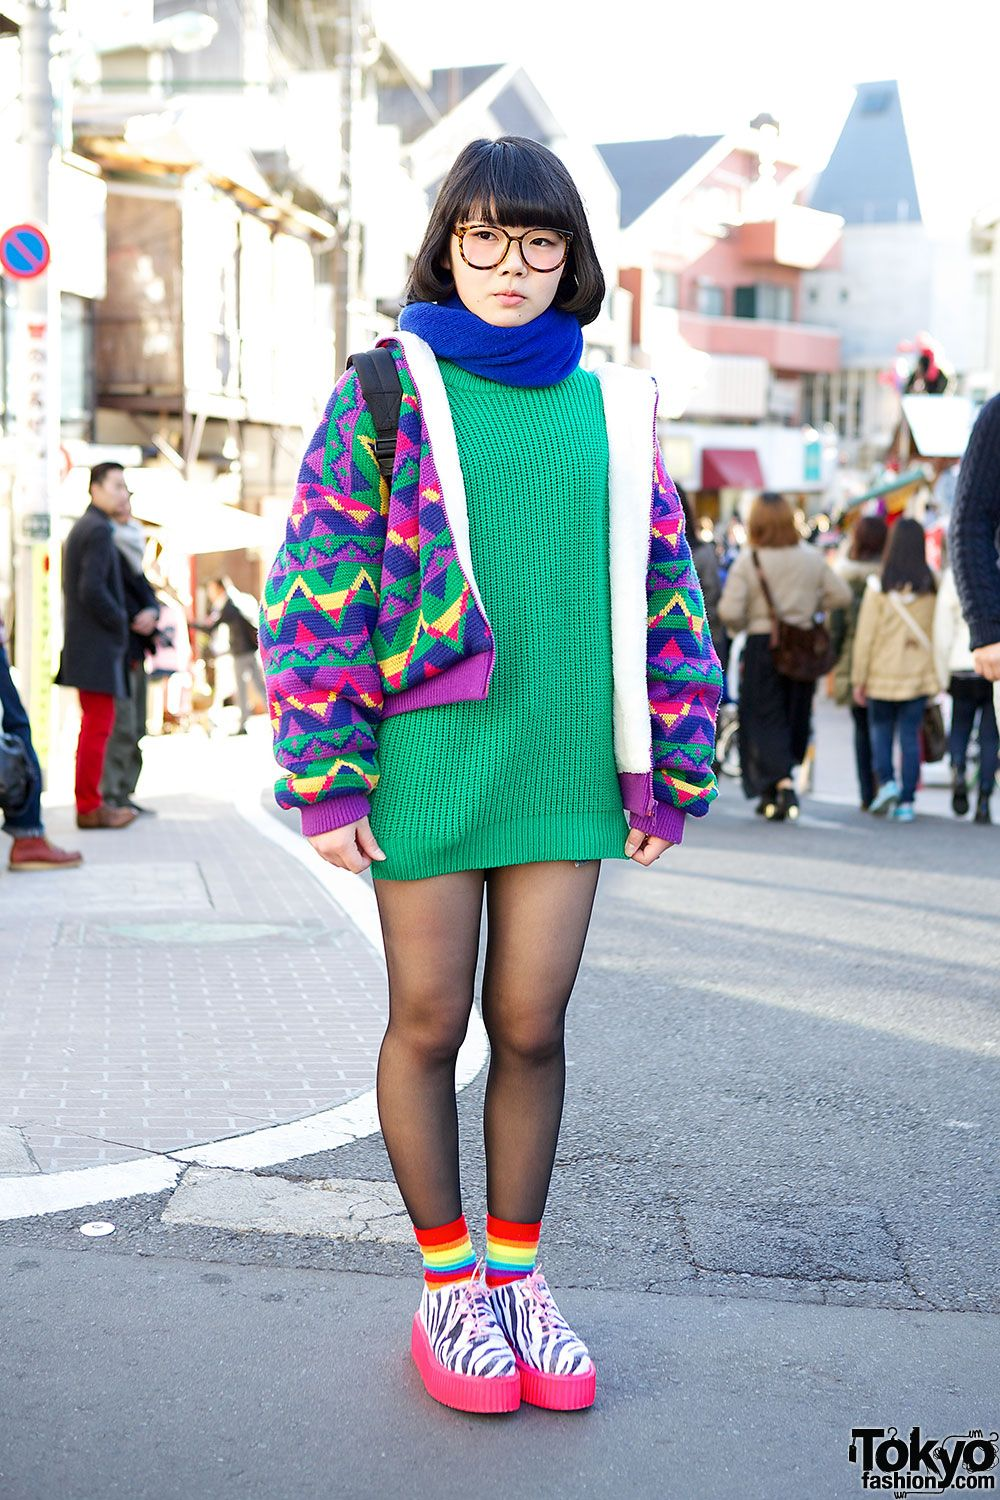 Colorful Harajuku Street Fashion